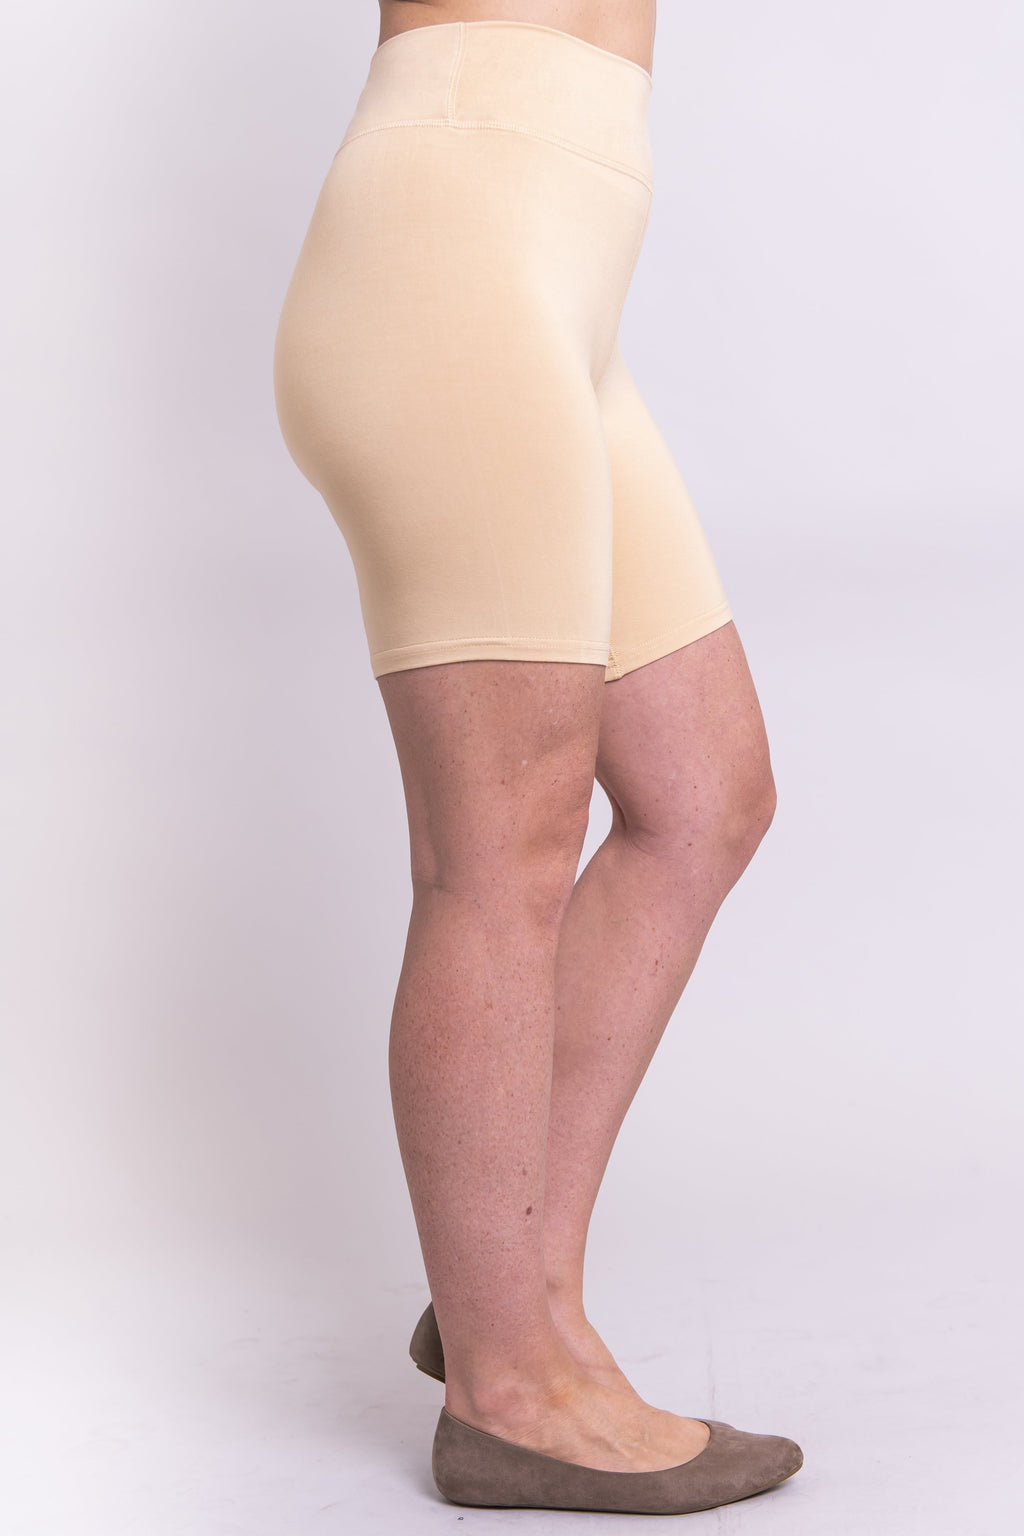 Hallie Undershorts, Beige - Blue Sky Clothing Co